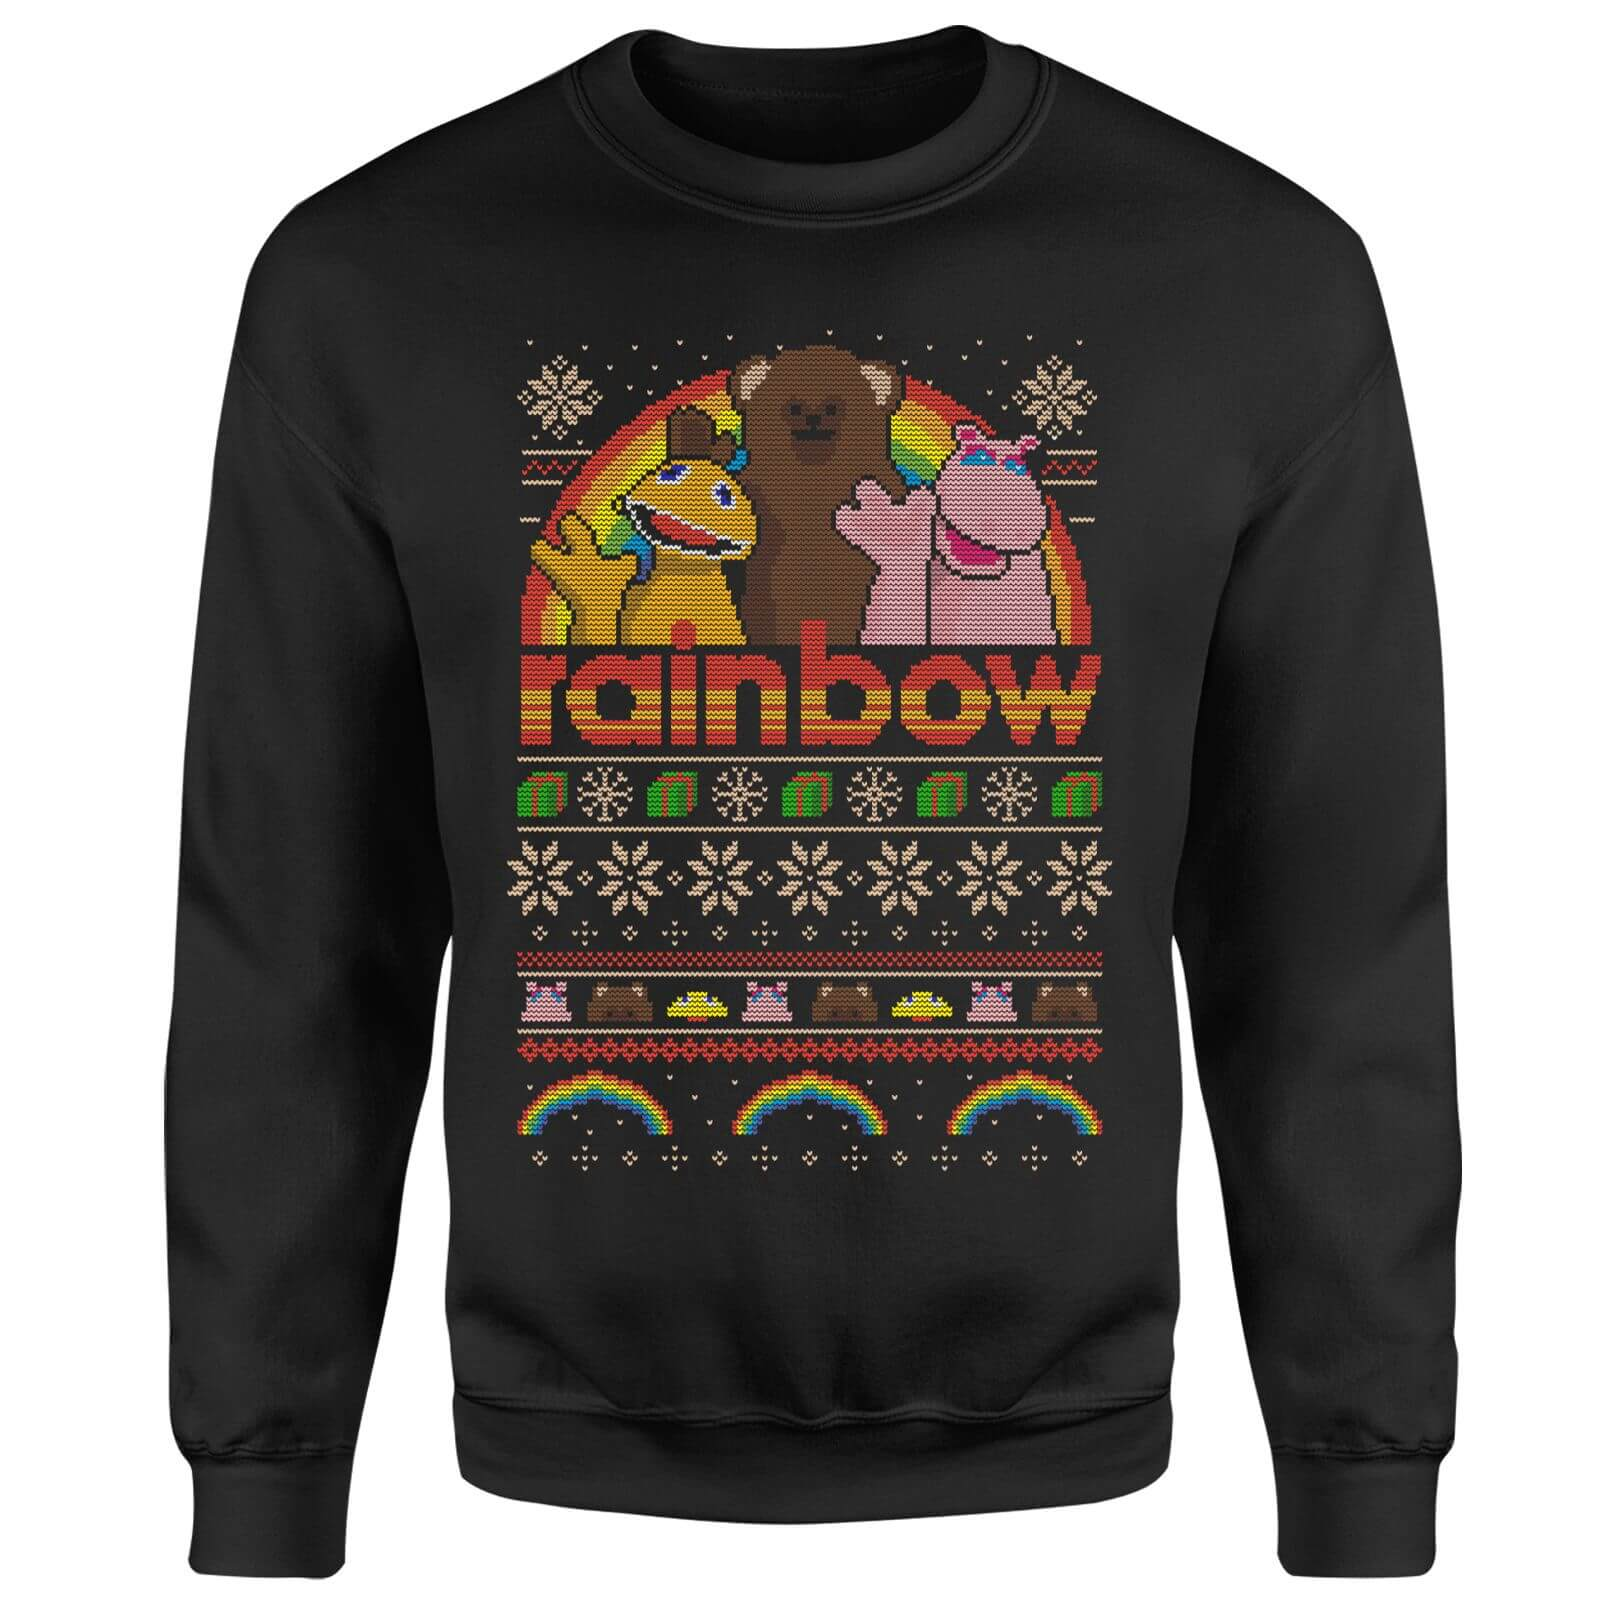 Rainbow Christmas Sweatshirt - Black